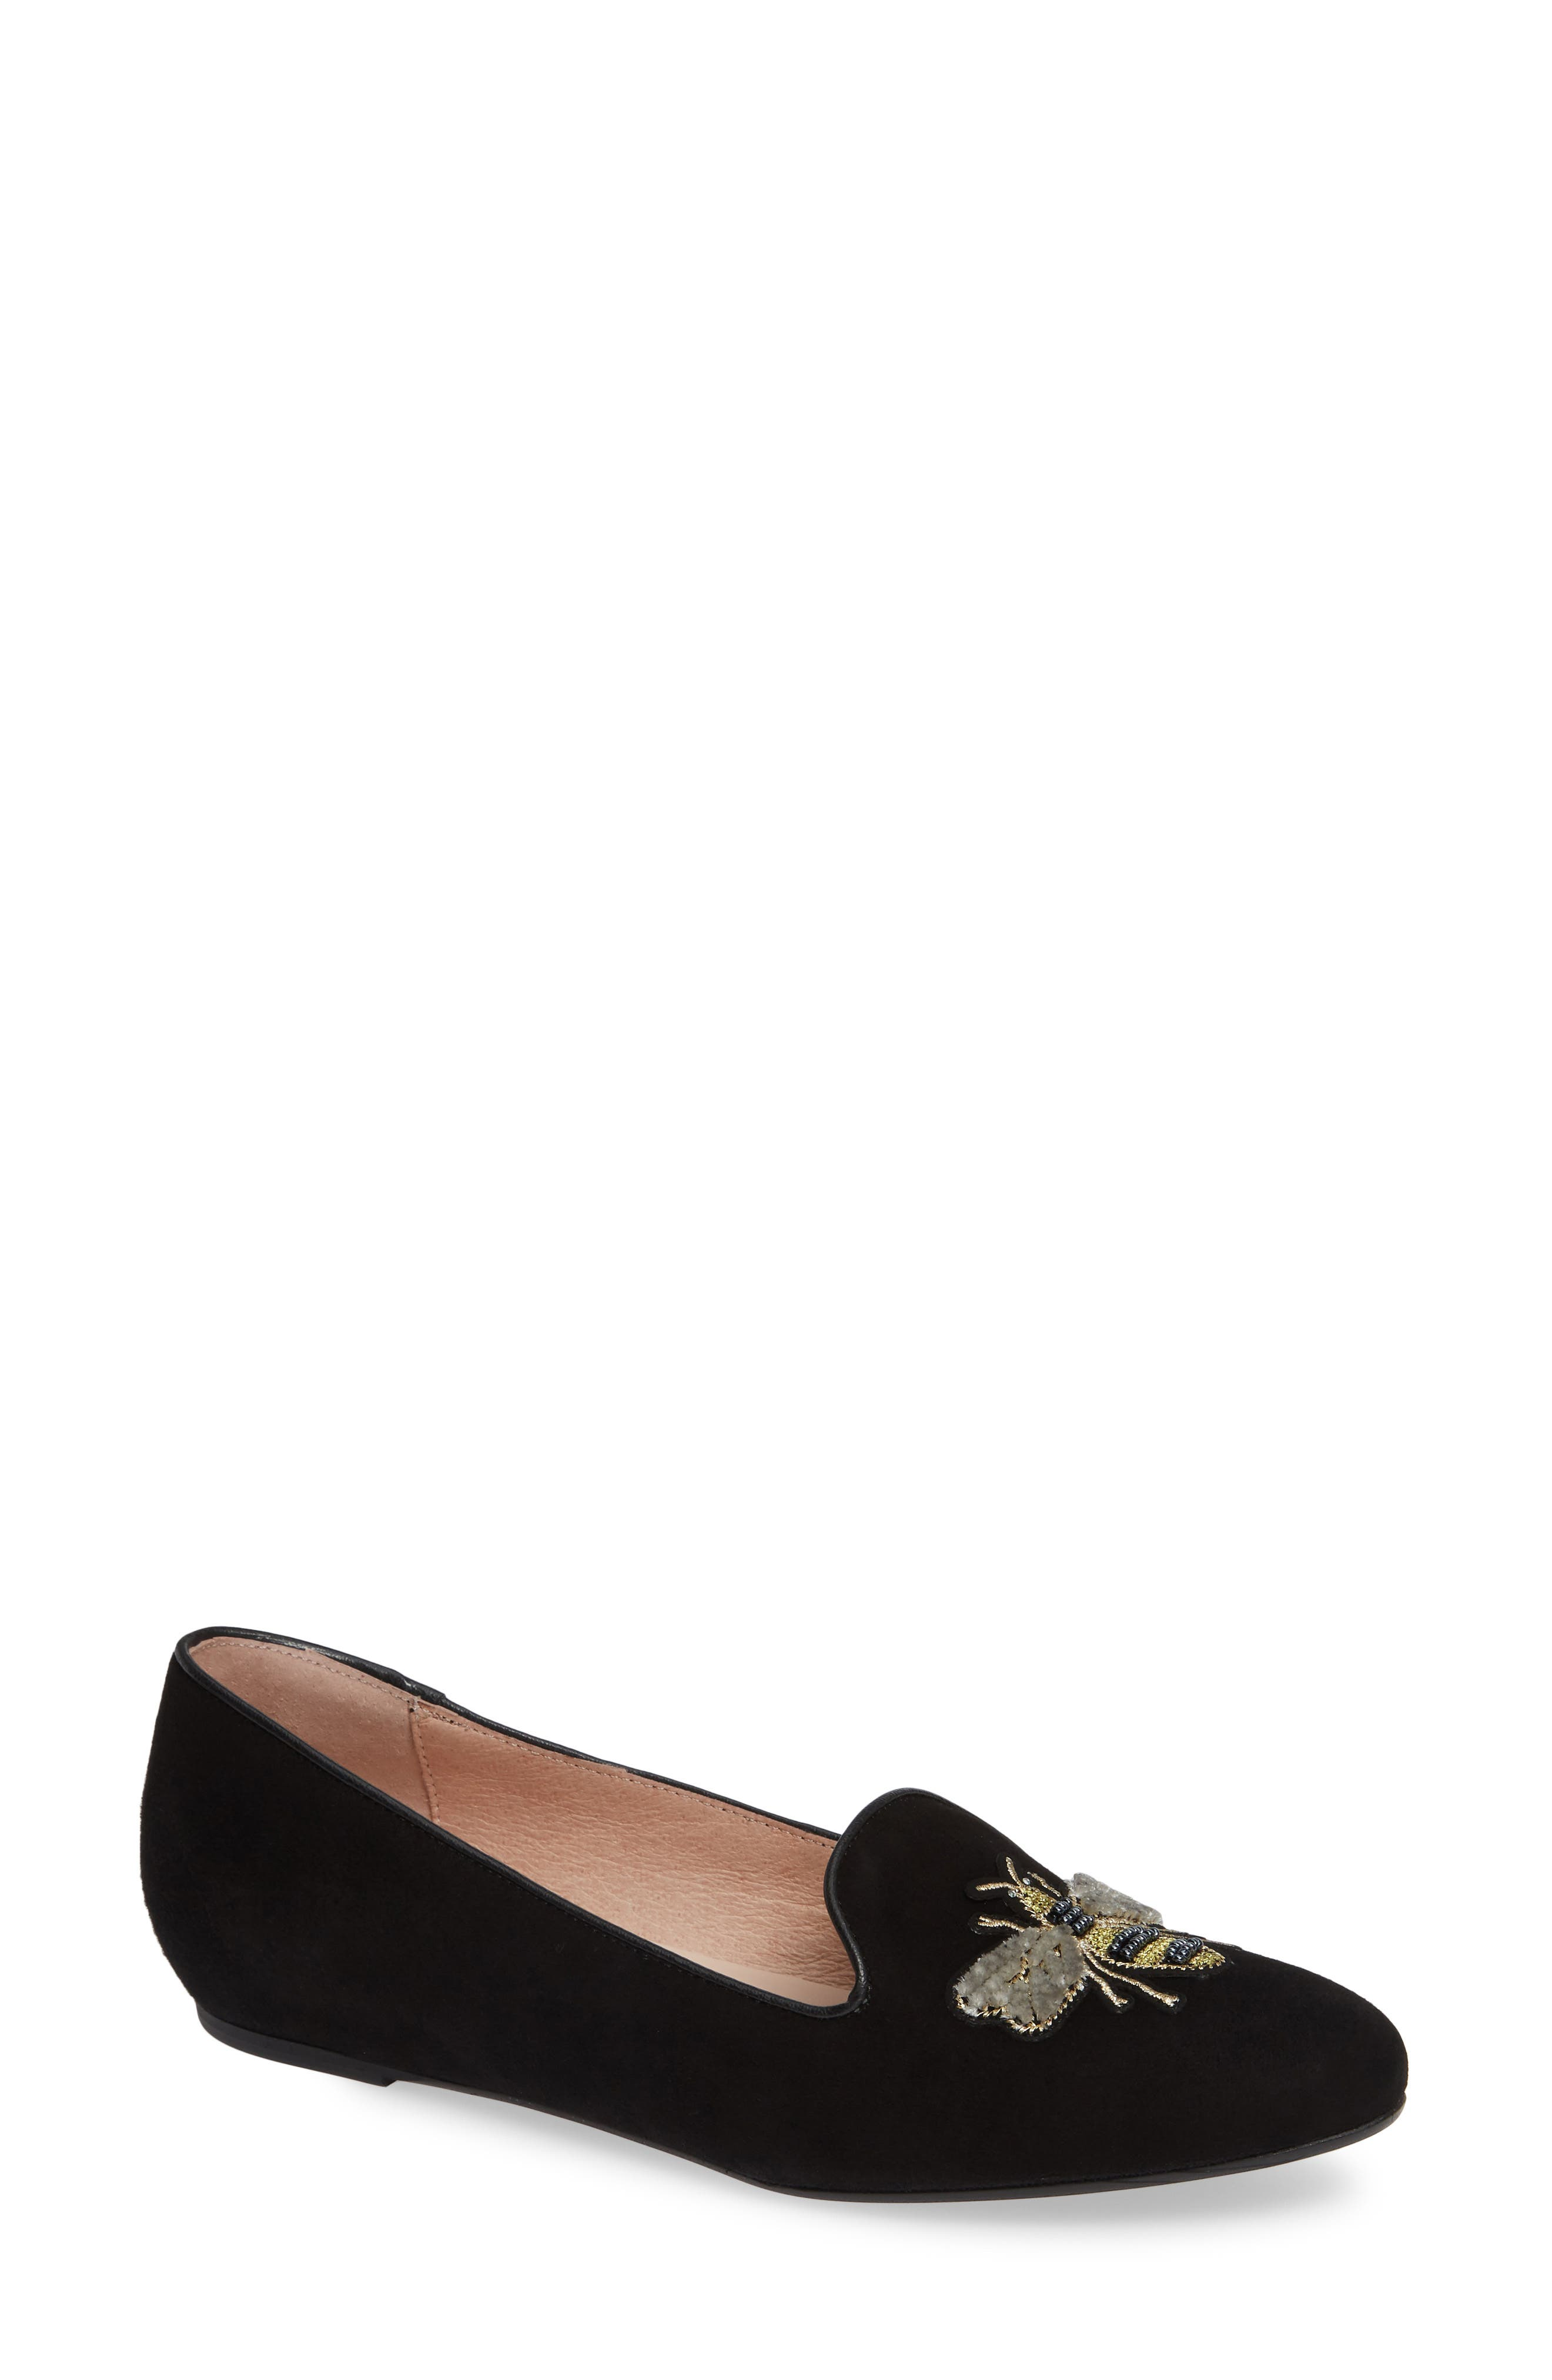 EMBROIDERED BEE LOAFER